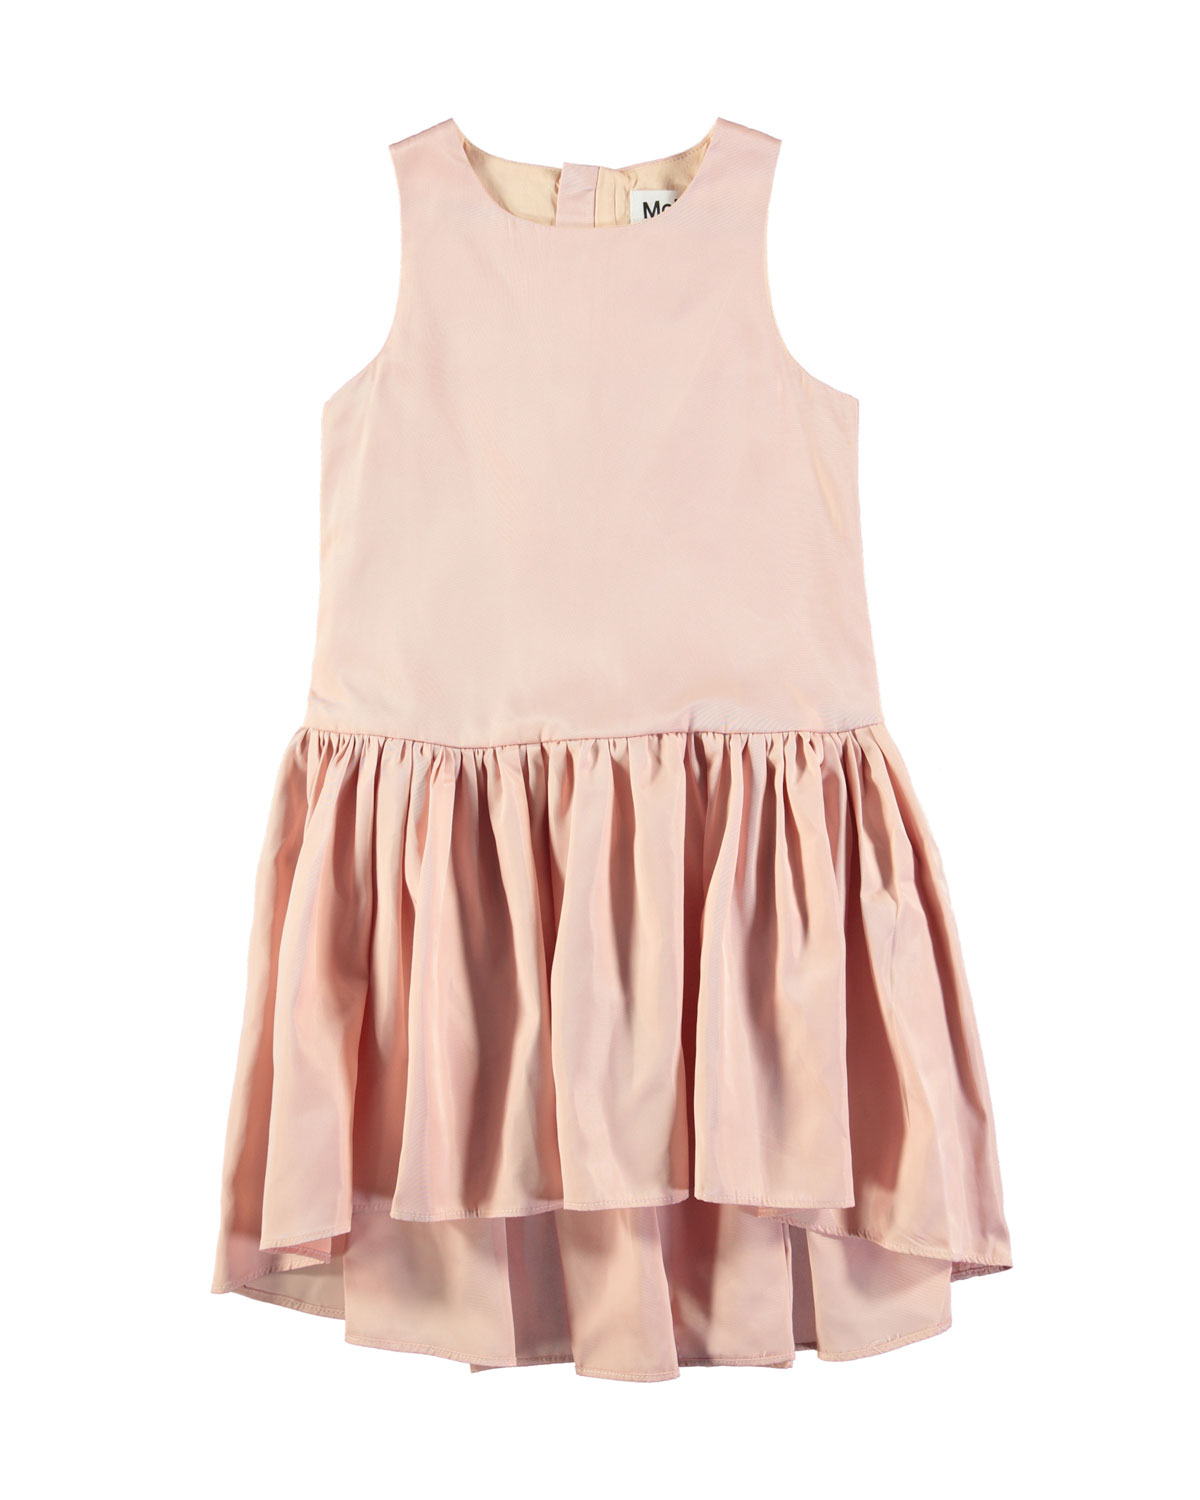 Kids Clothing Collection At Bergdorf Goodman